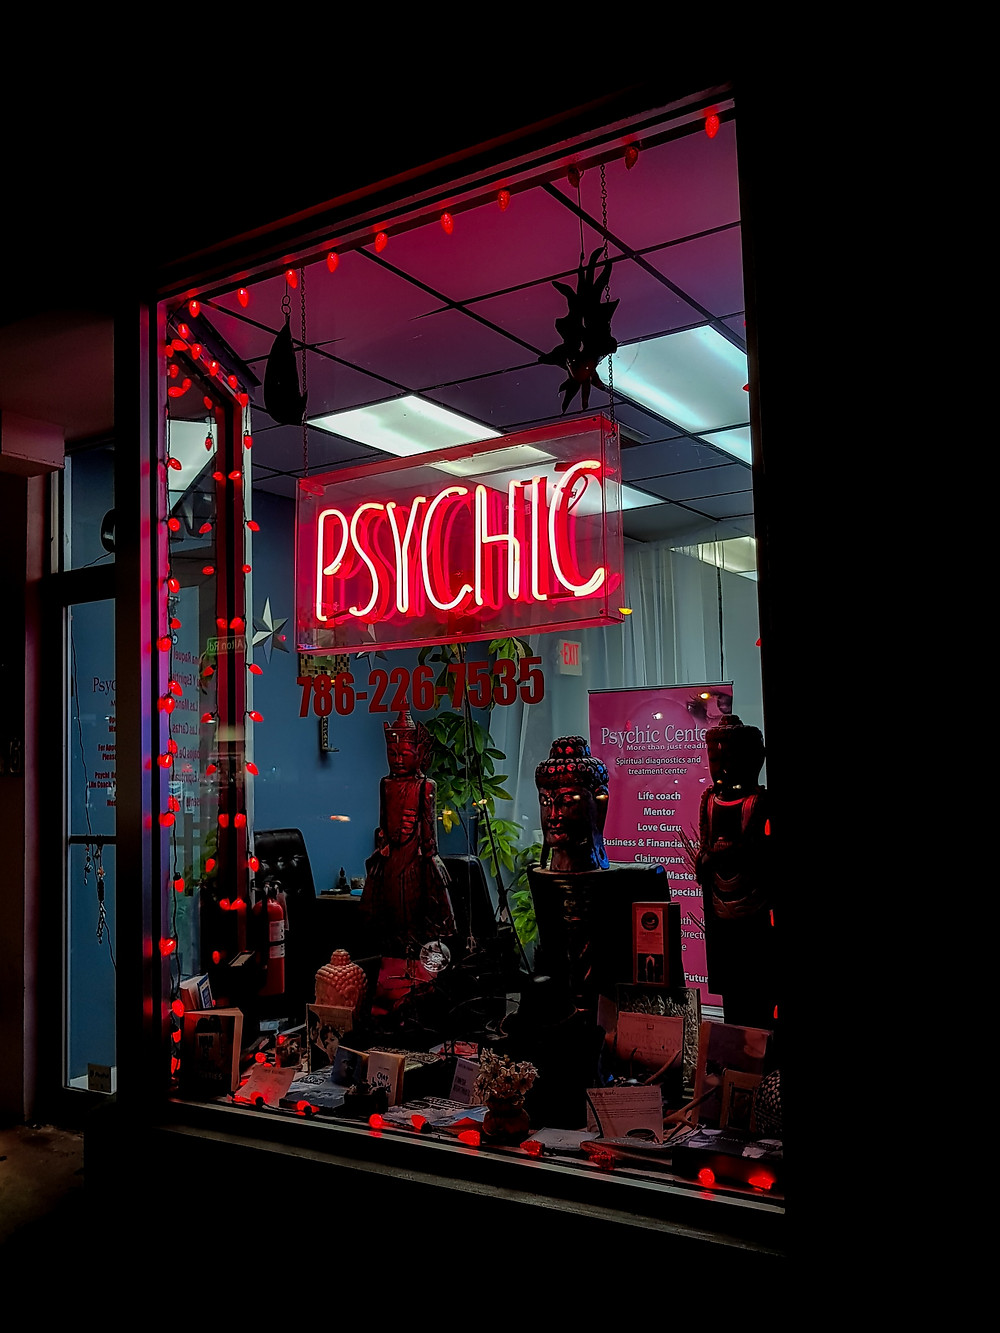 The vivid nature of psychic thoughts is similar to that of the flamboyance of the picture